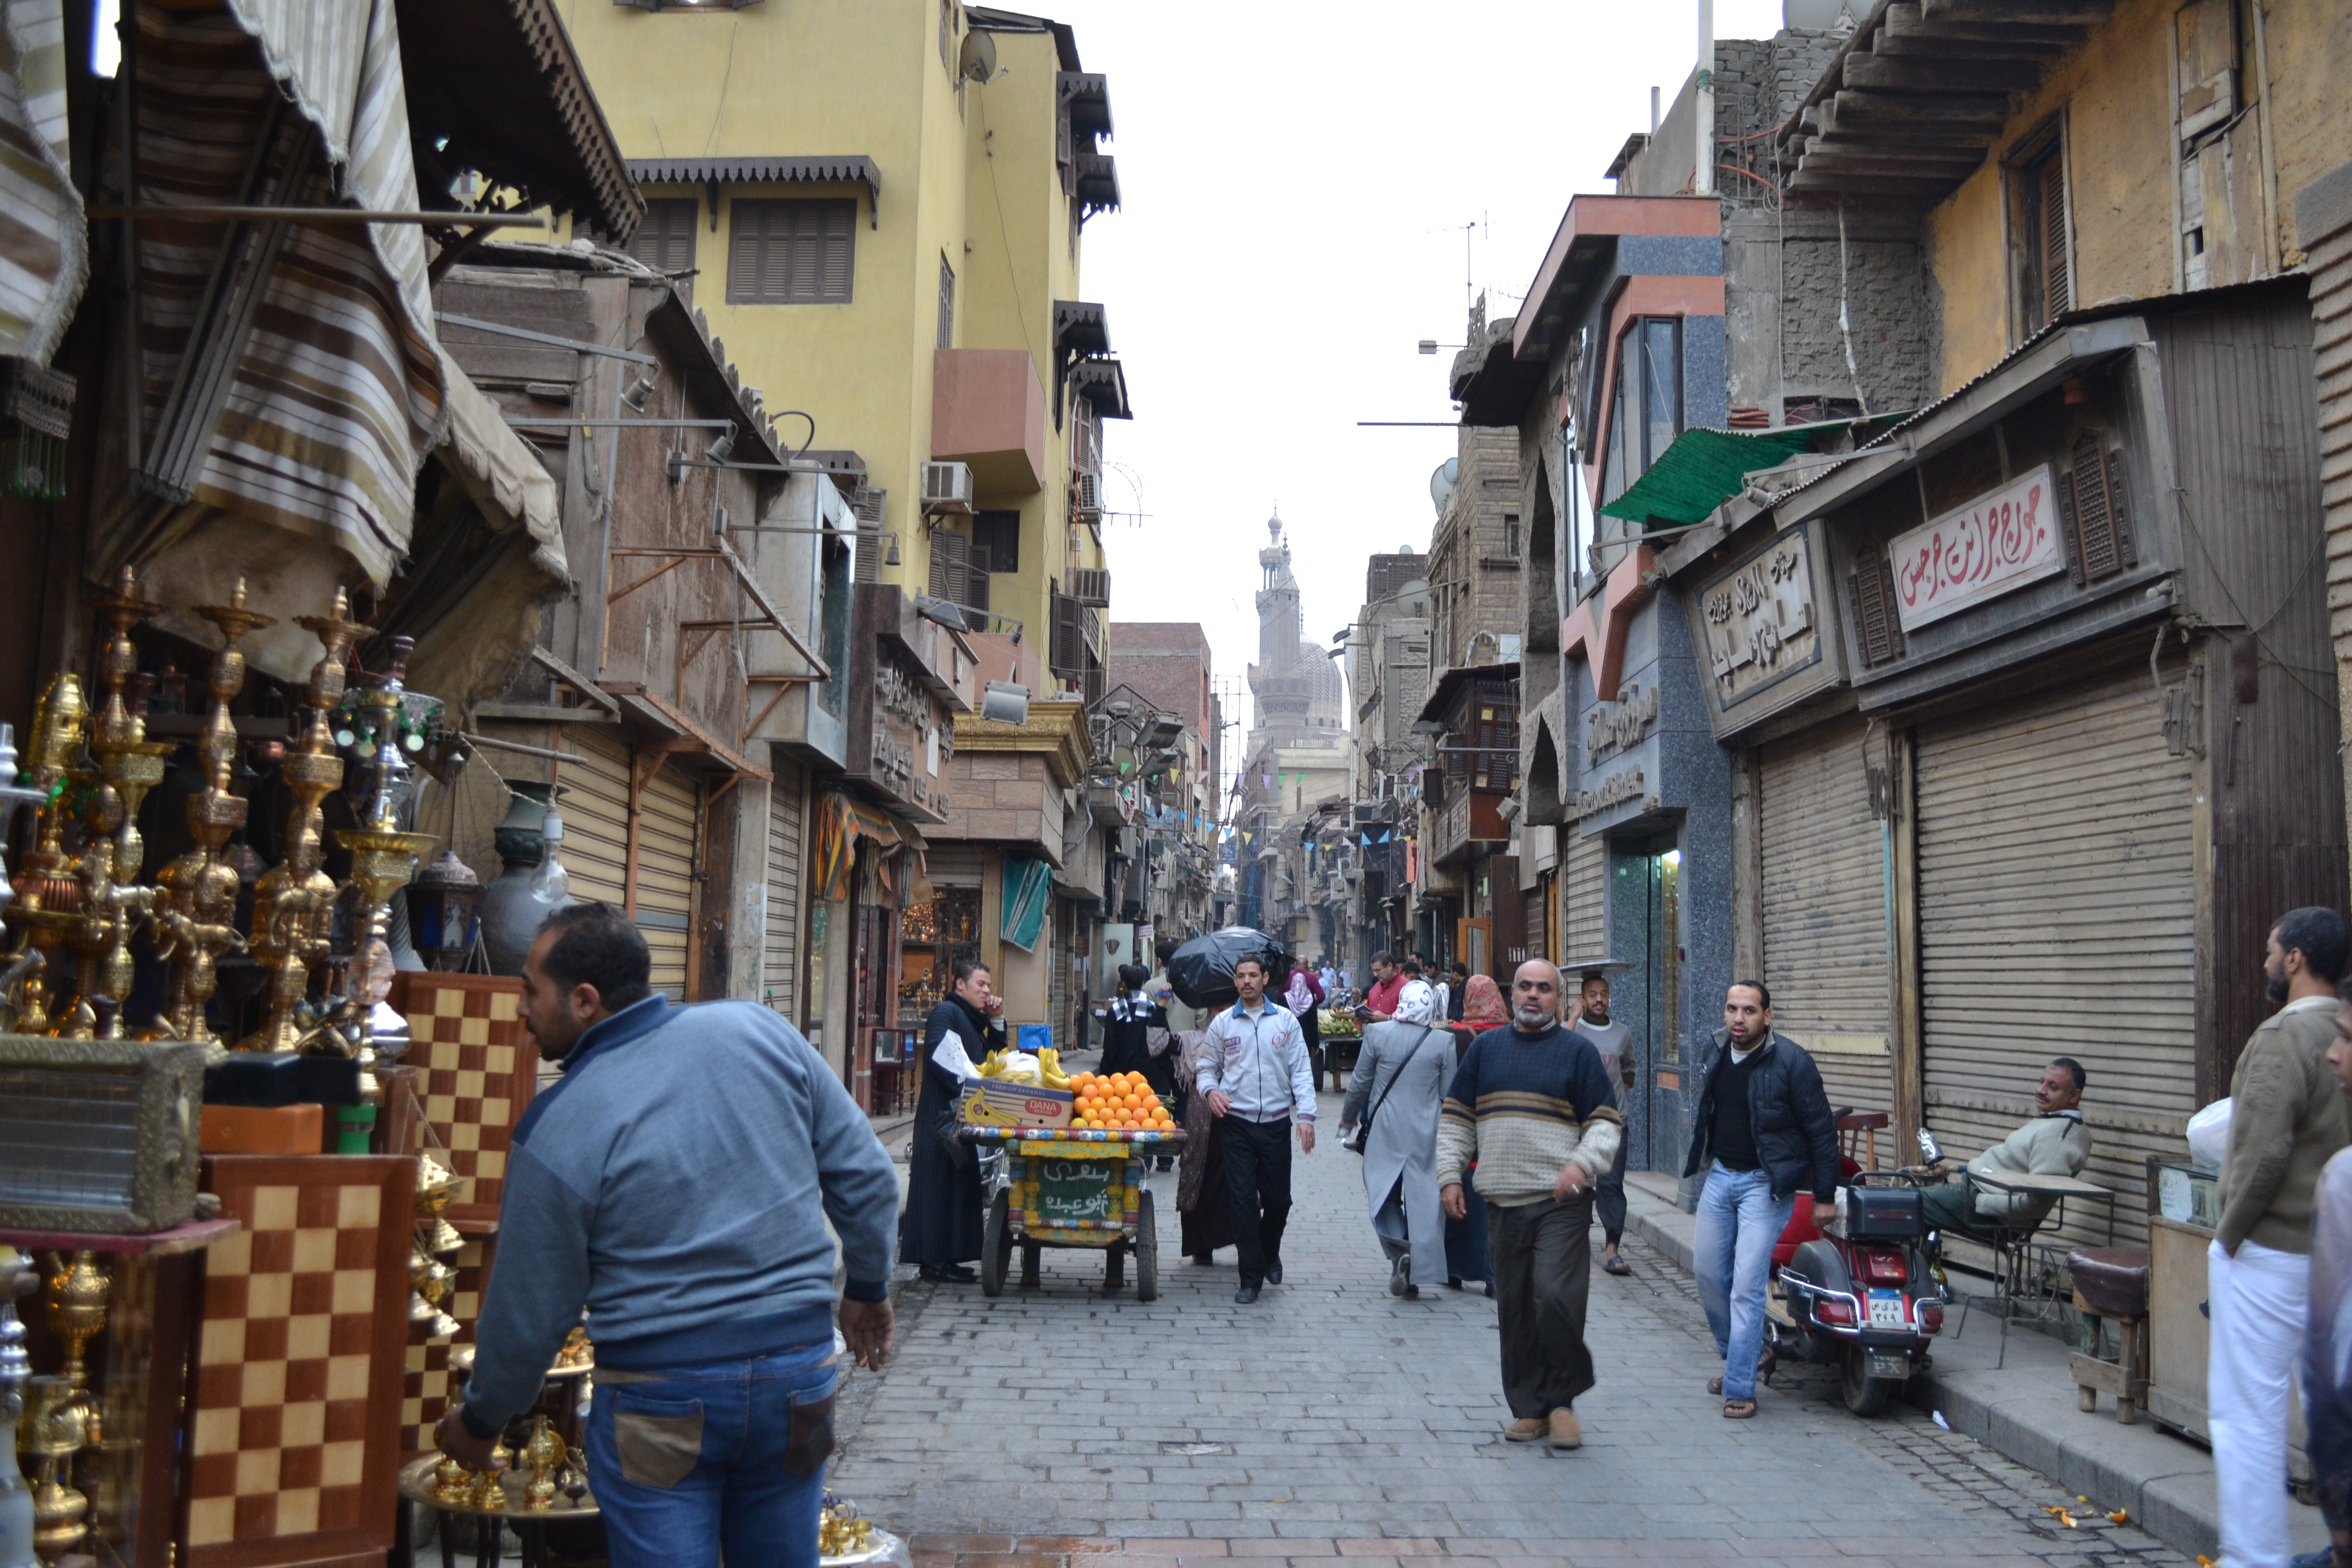 The government claims 10.5 million tourists visited Egypt in 2012. Where are the tourists?